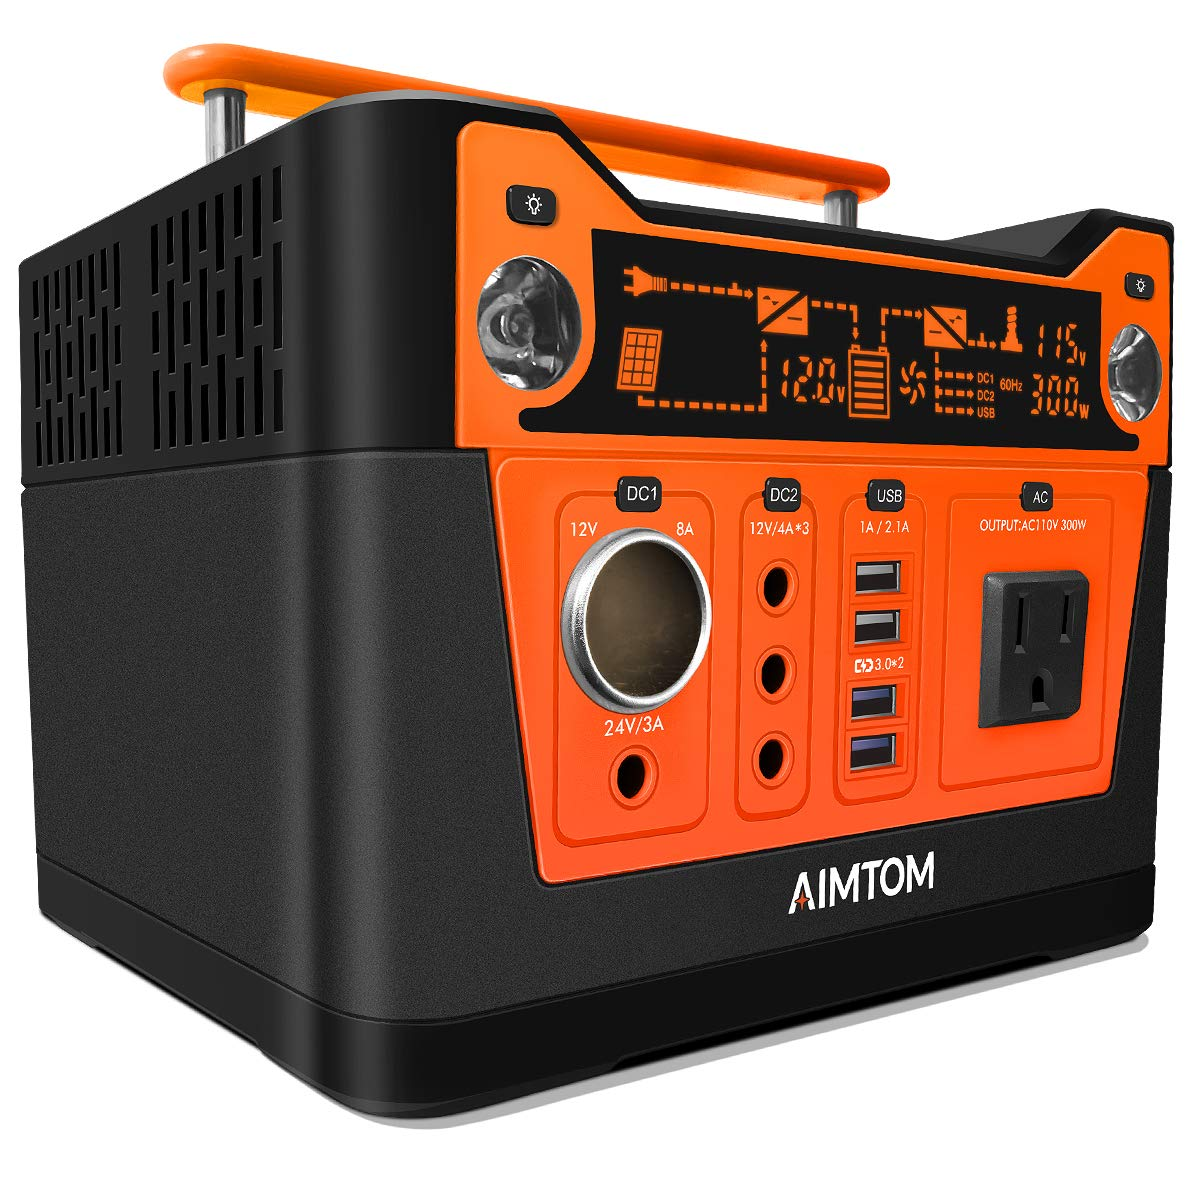 AIMTOM 300-Watt Portable Power Station - 280Wh Battery Powered Generator Alternative with 12V, 24V, AC and USB Outputs - Solar Rechargeable Lithium Backup Power - for Camping Outdoors CPAP Emergency by AIMTOM